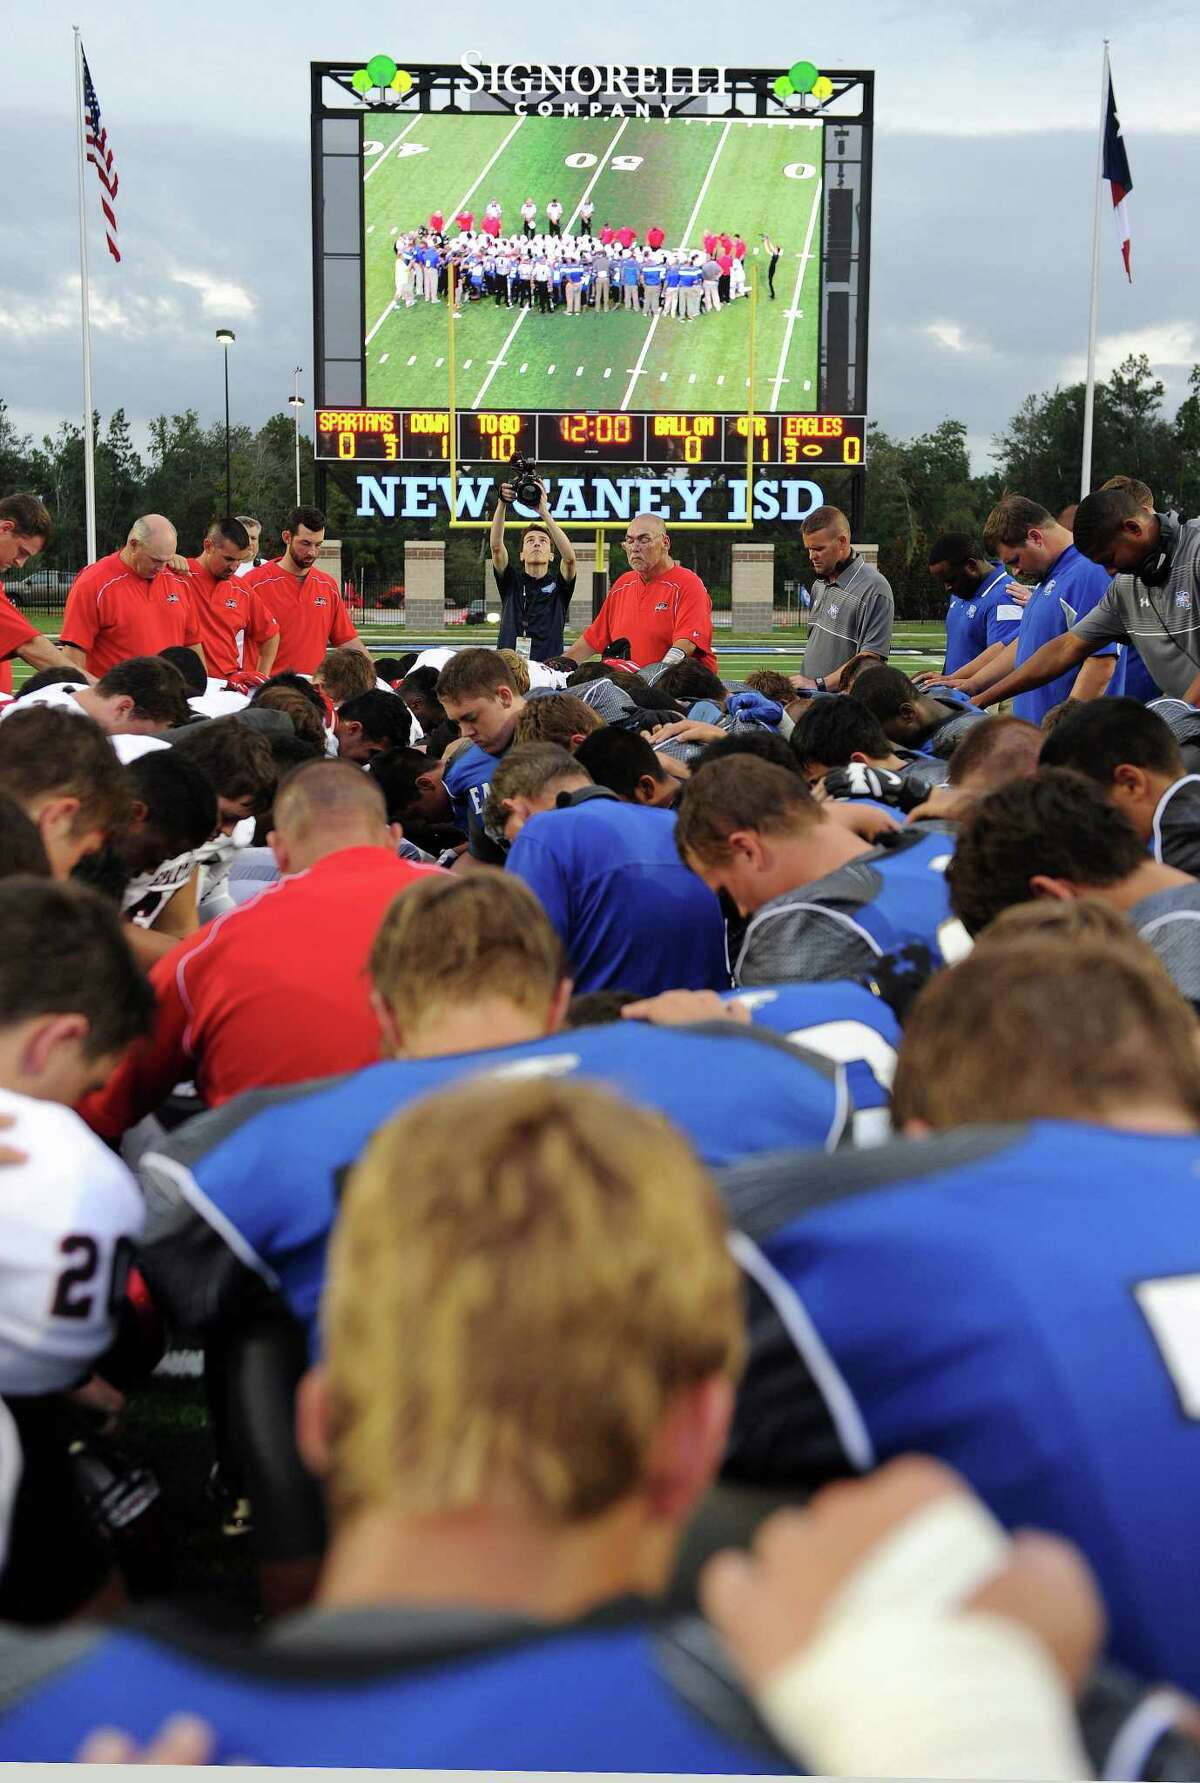 New Caney and Porter football players pray together on Sept. 12 at Texan Drive Stadium in Porter. The stadium boasts the largest video scoreboard for a high school in the United States.